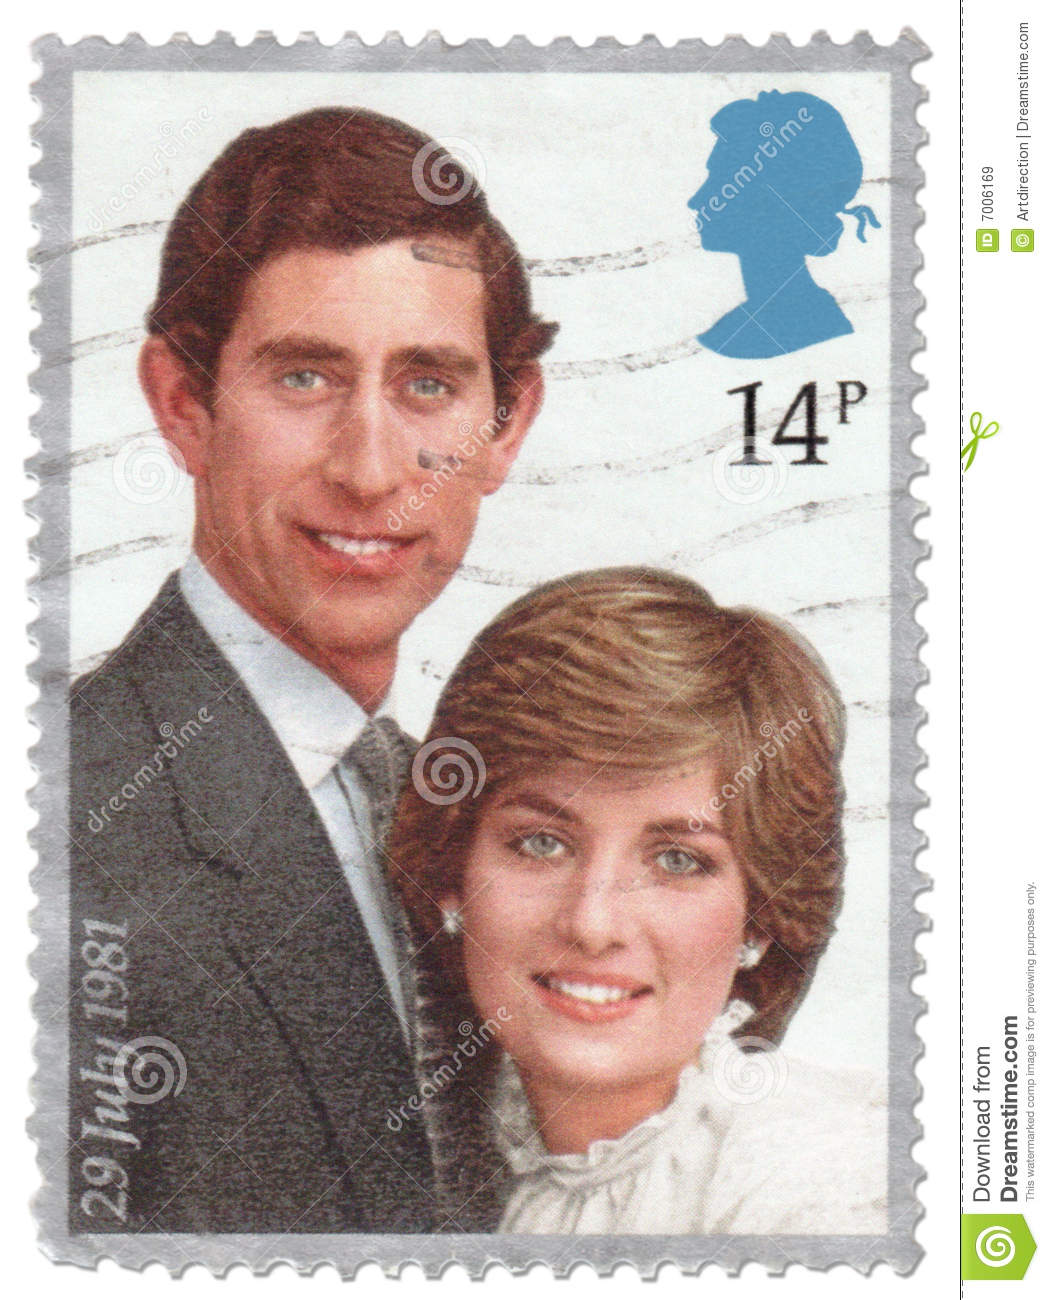 royalty free stock images vintage royal wedding stamp image wedding postage stamps Vintage Royal Wedding Stamp Editorial Stock Image